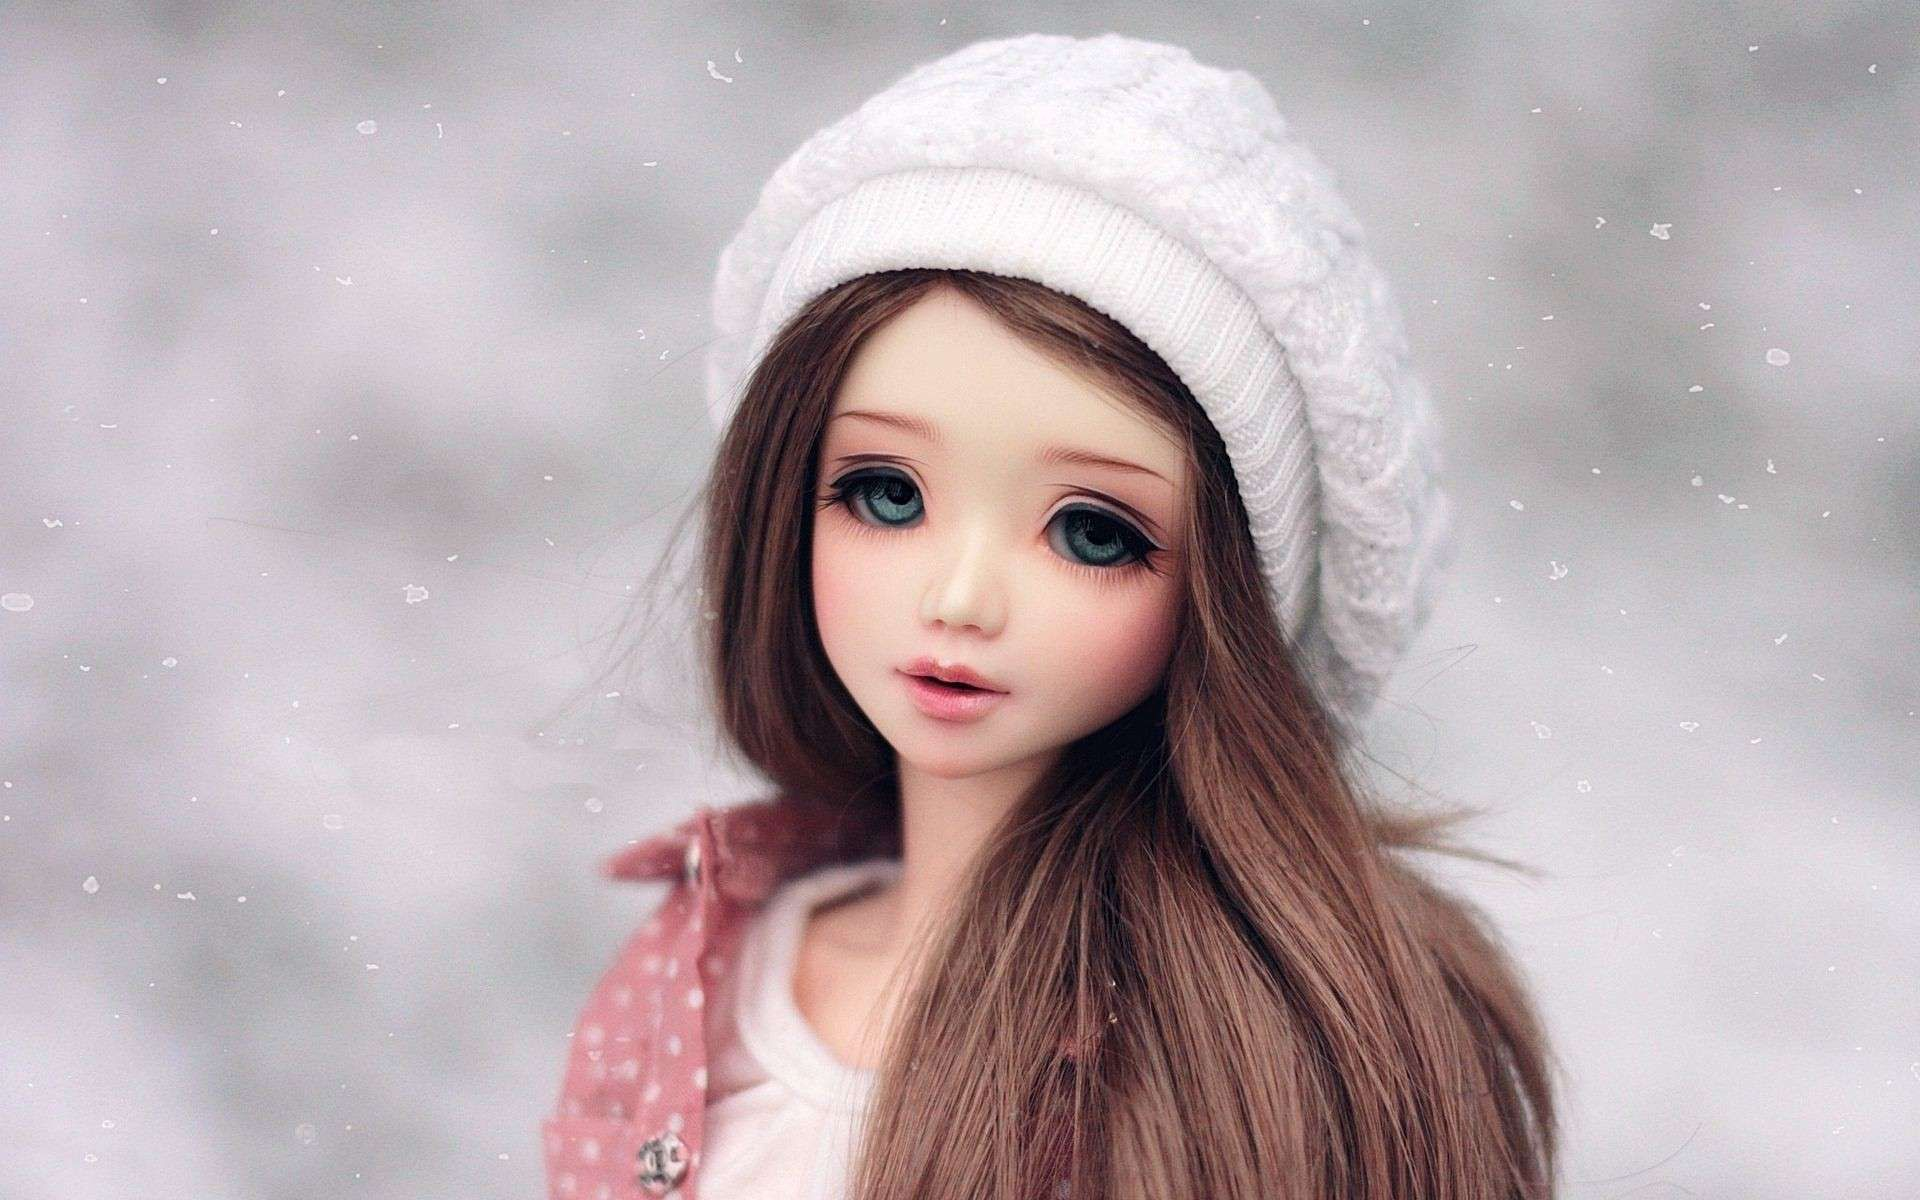 Latest Barbie Doll Hd Images In 2020 Beautiful Barbie Dolls Barbie Images Beautiful Dolls